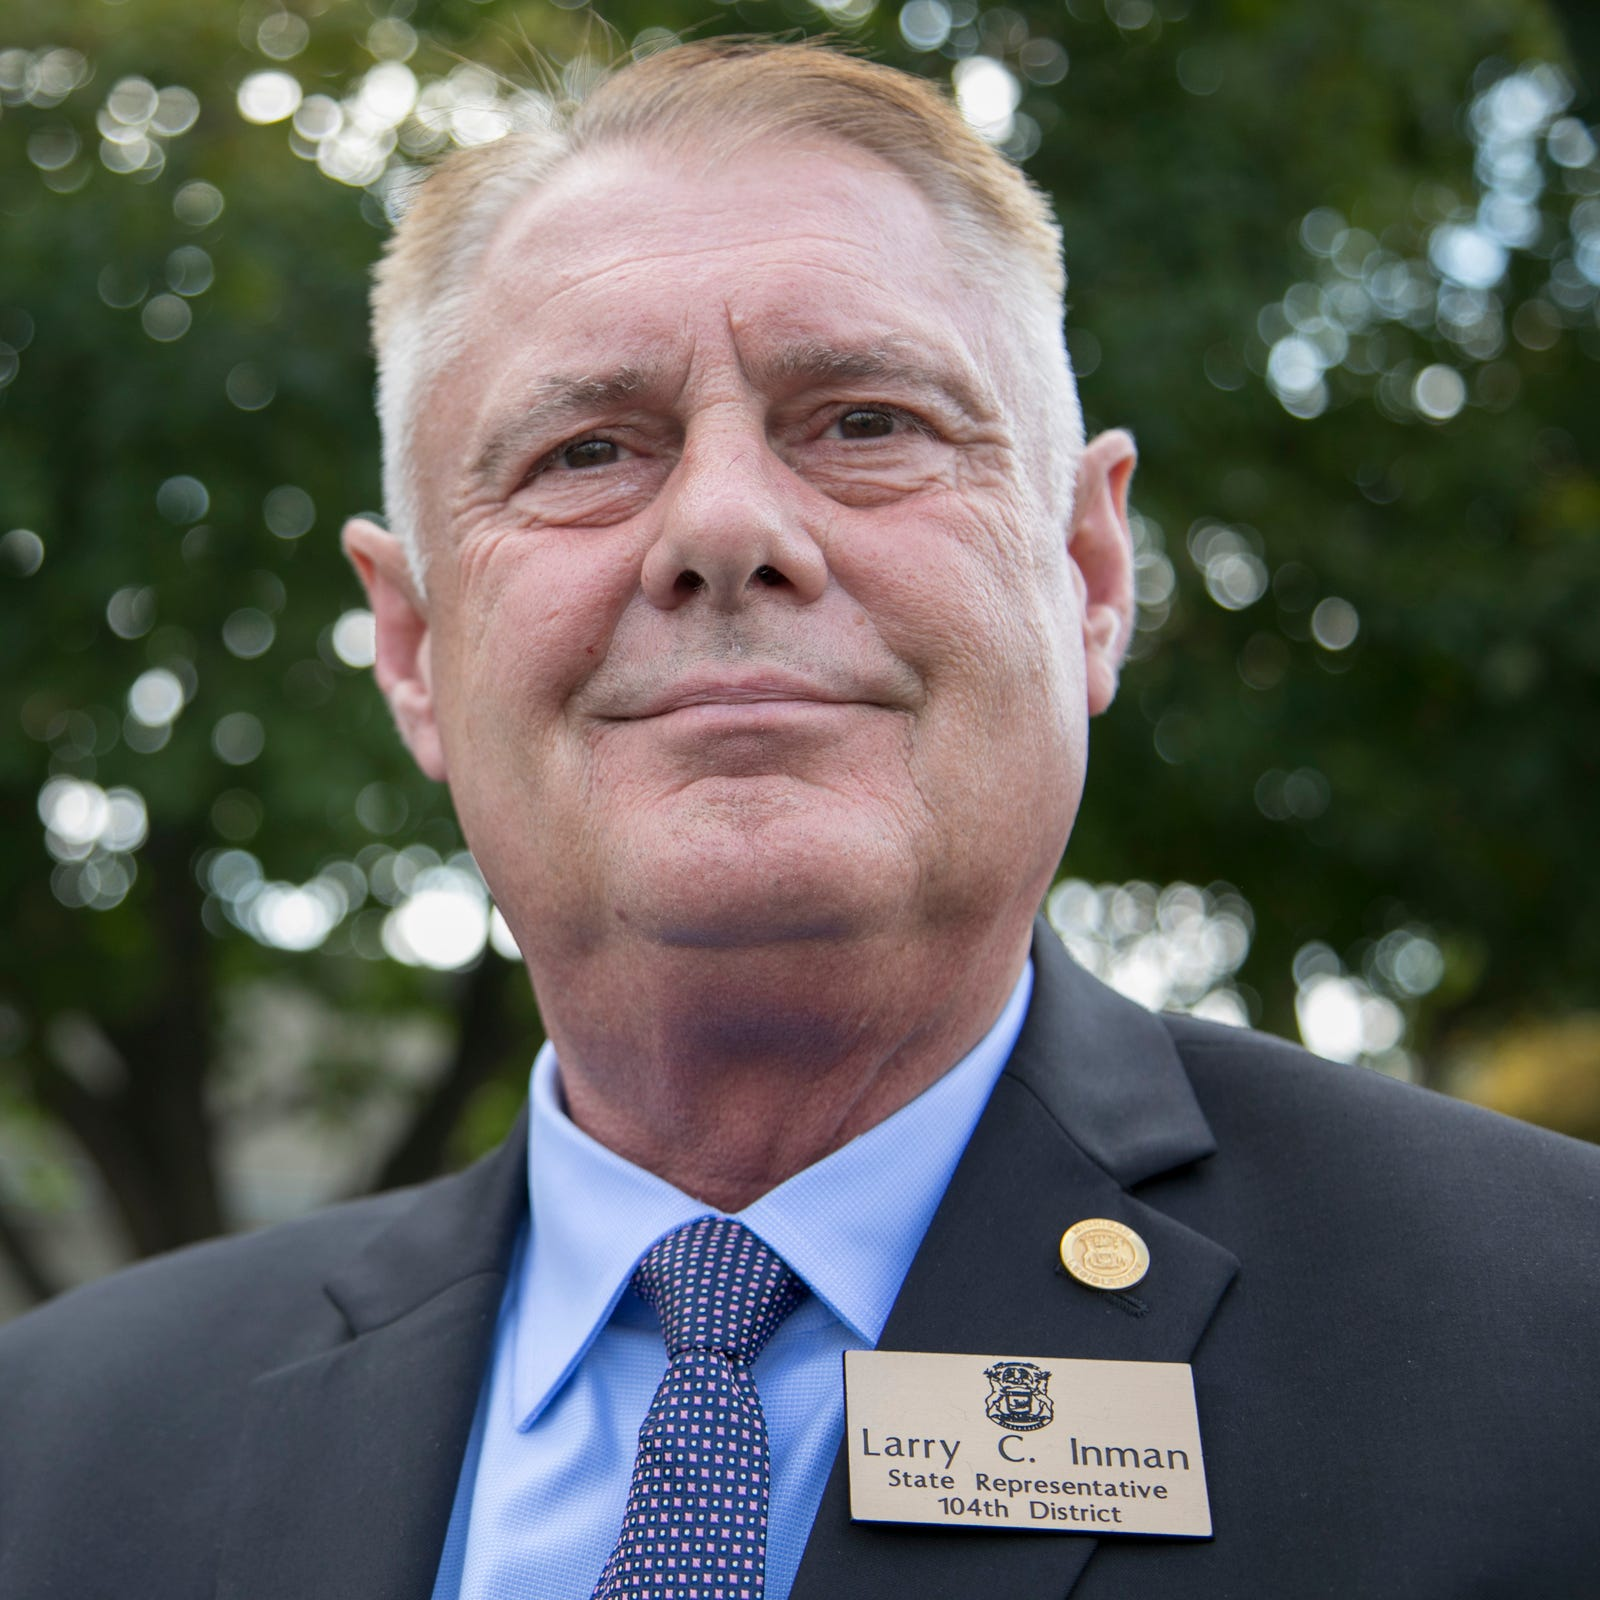 Michigan Republican lawmaker Larry Inman accused of trying to sell his vote